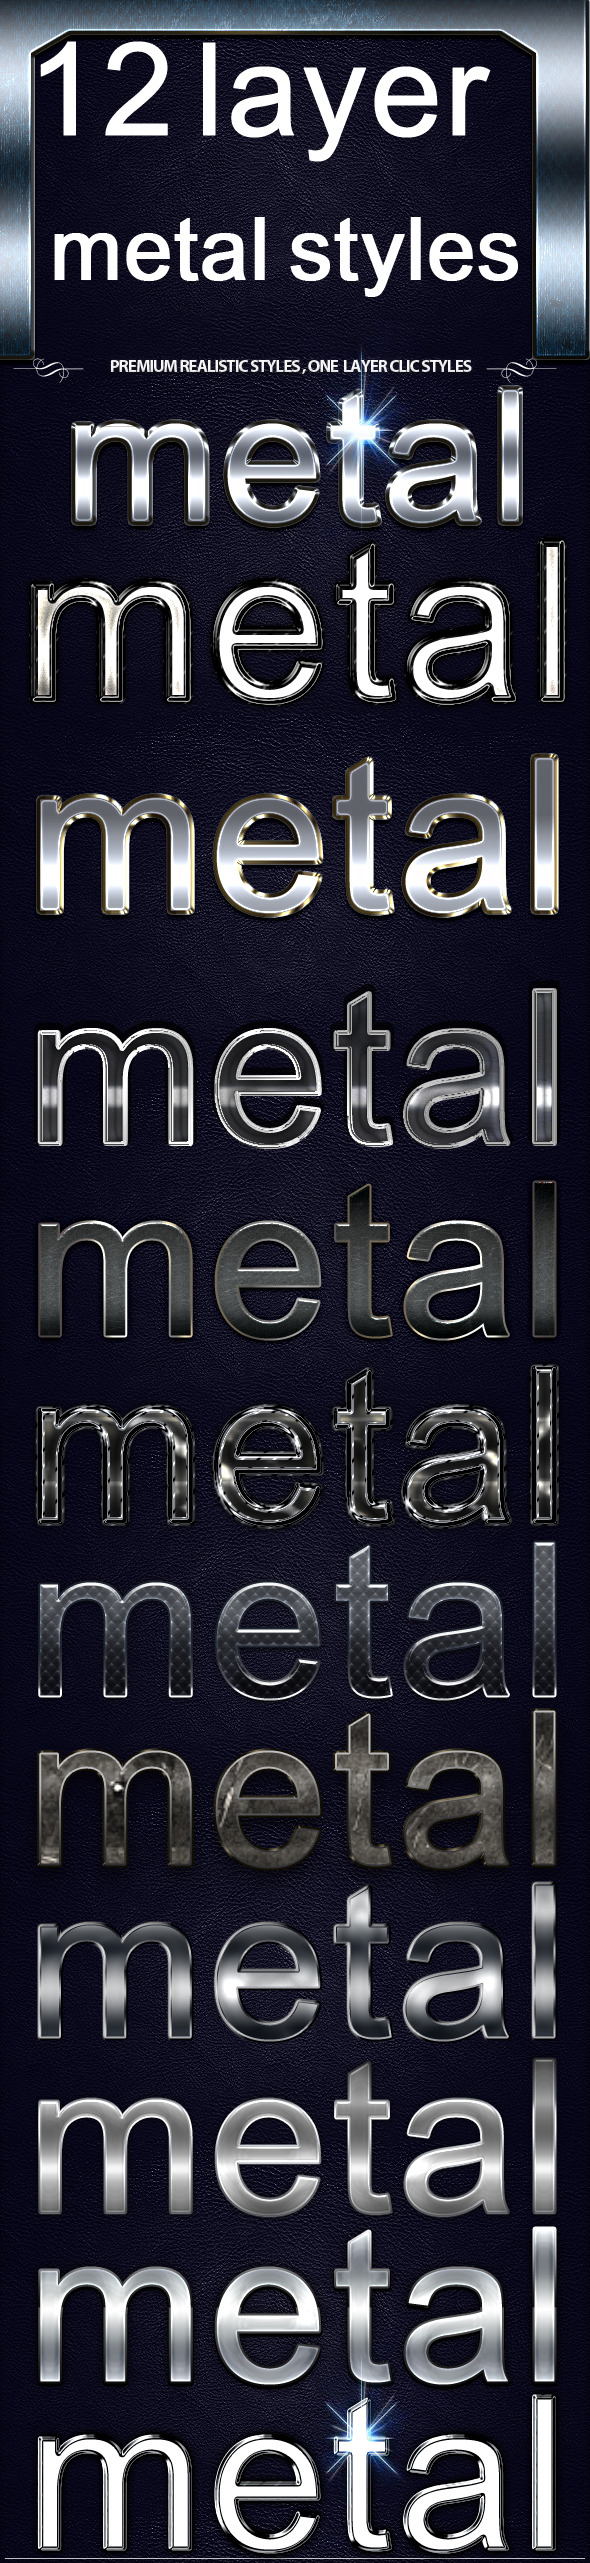 GraphicRiver 12 layre Metal Styles 11531122